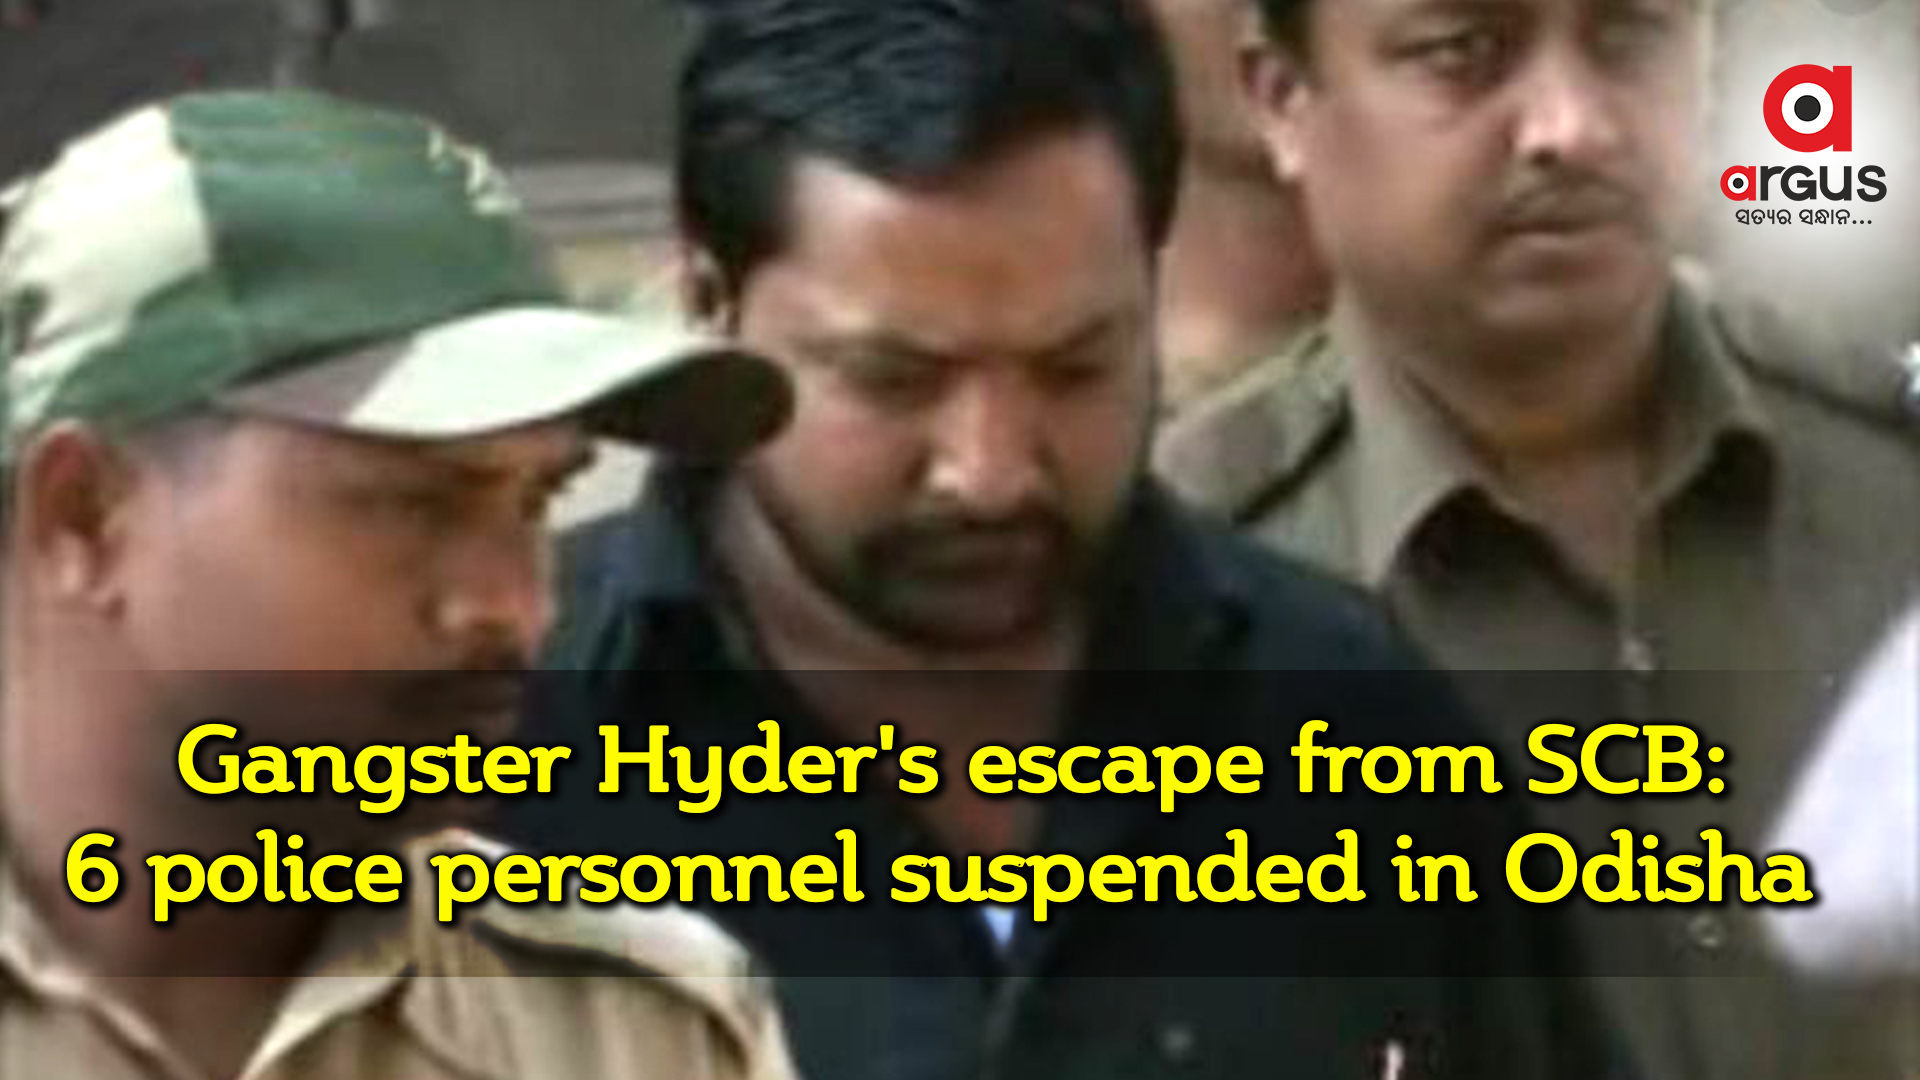 Gangster Hyder's escape from SCB: 6 police personnel suspended in Odisha